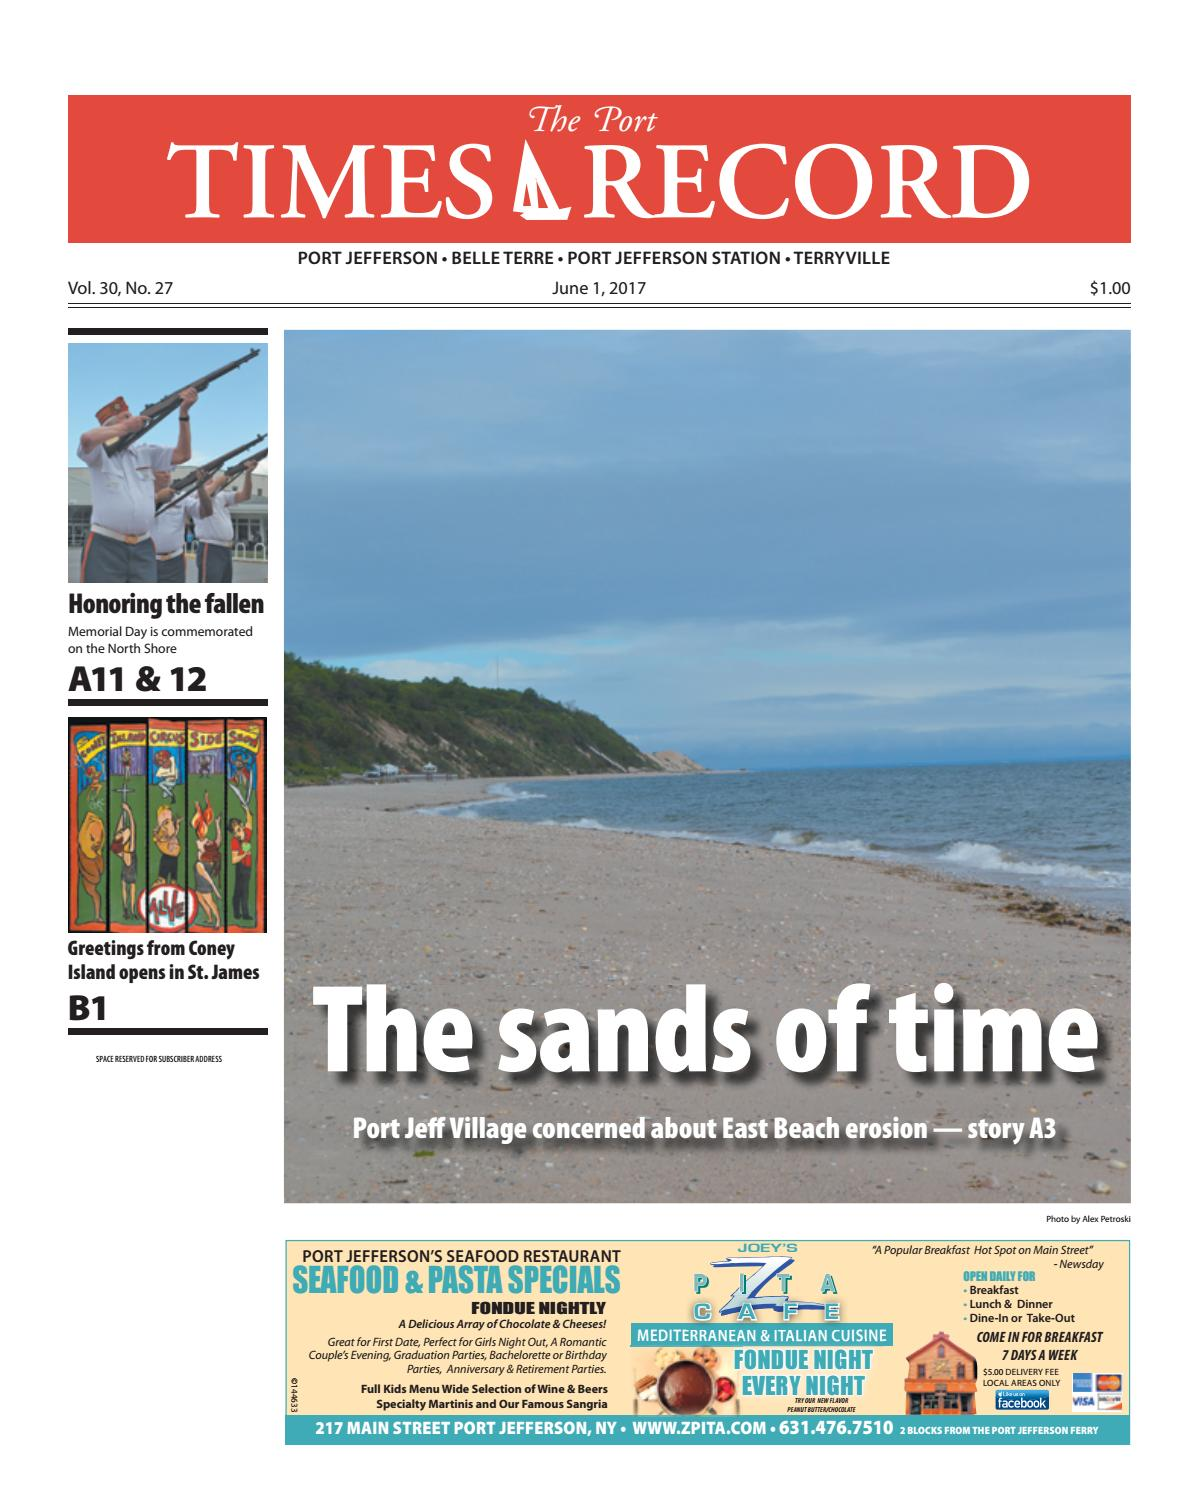 The Port Times Record - June 1, 2017 by TBR News Media - issuu